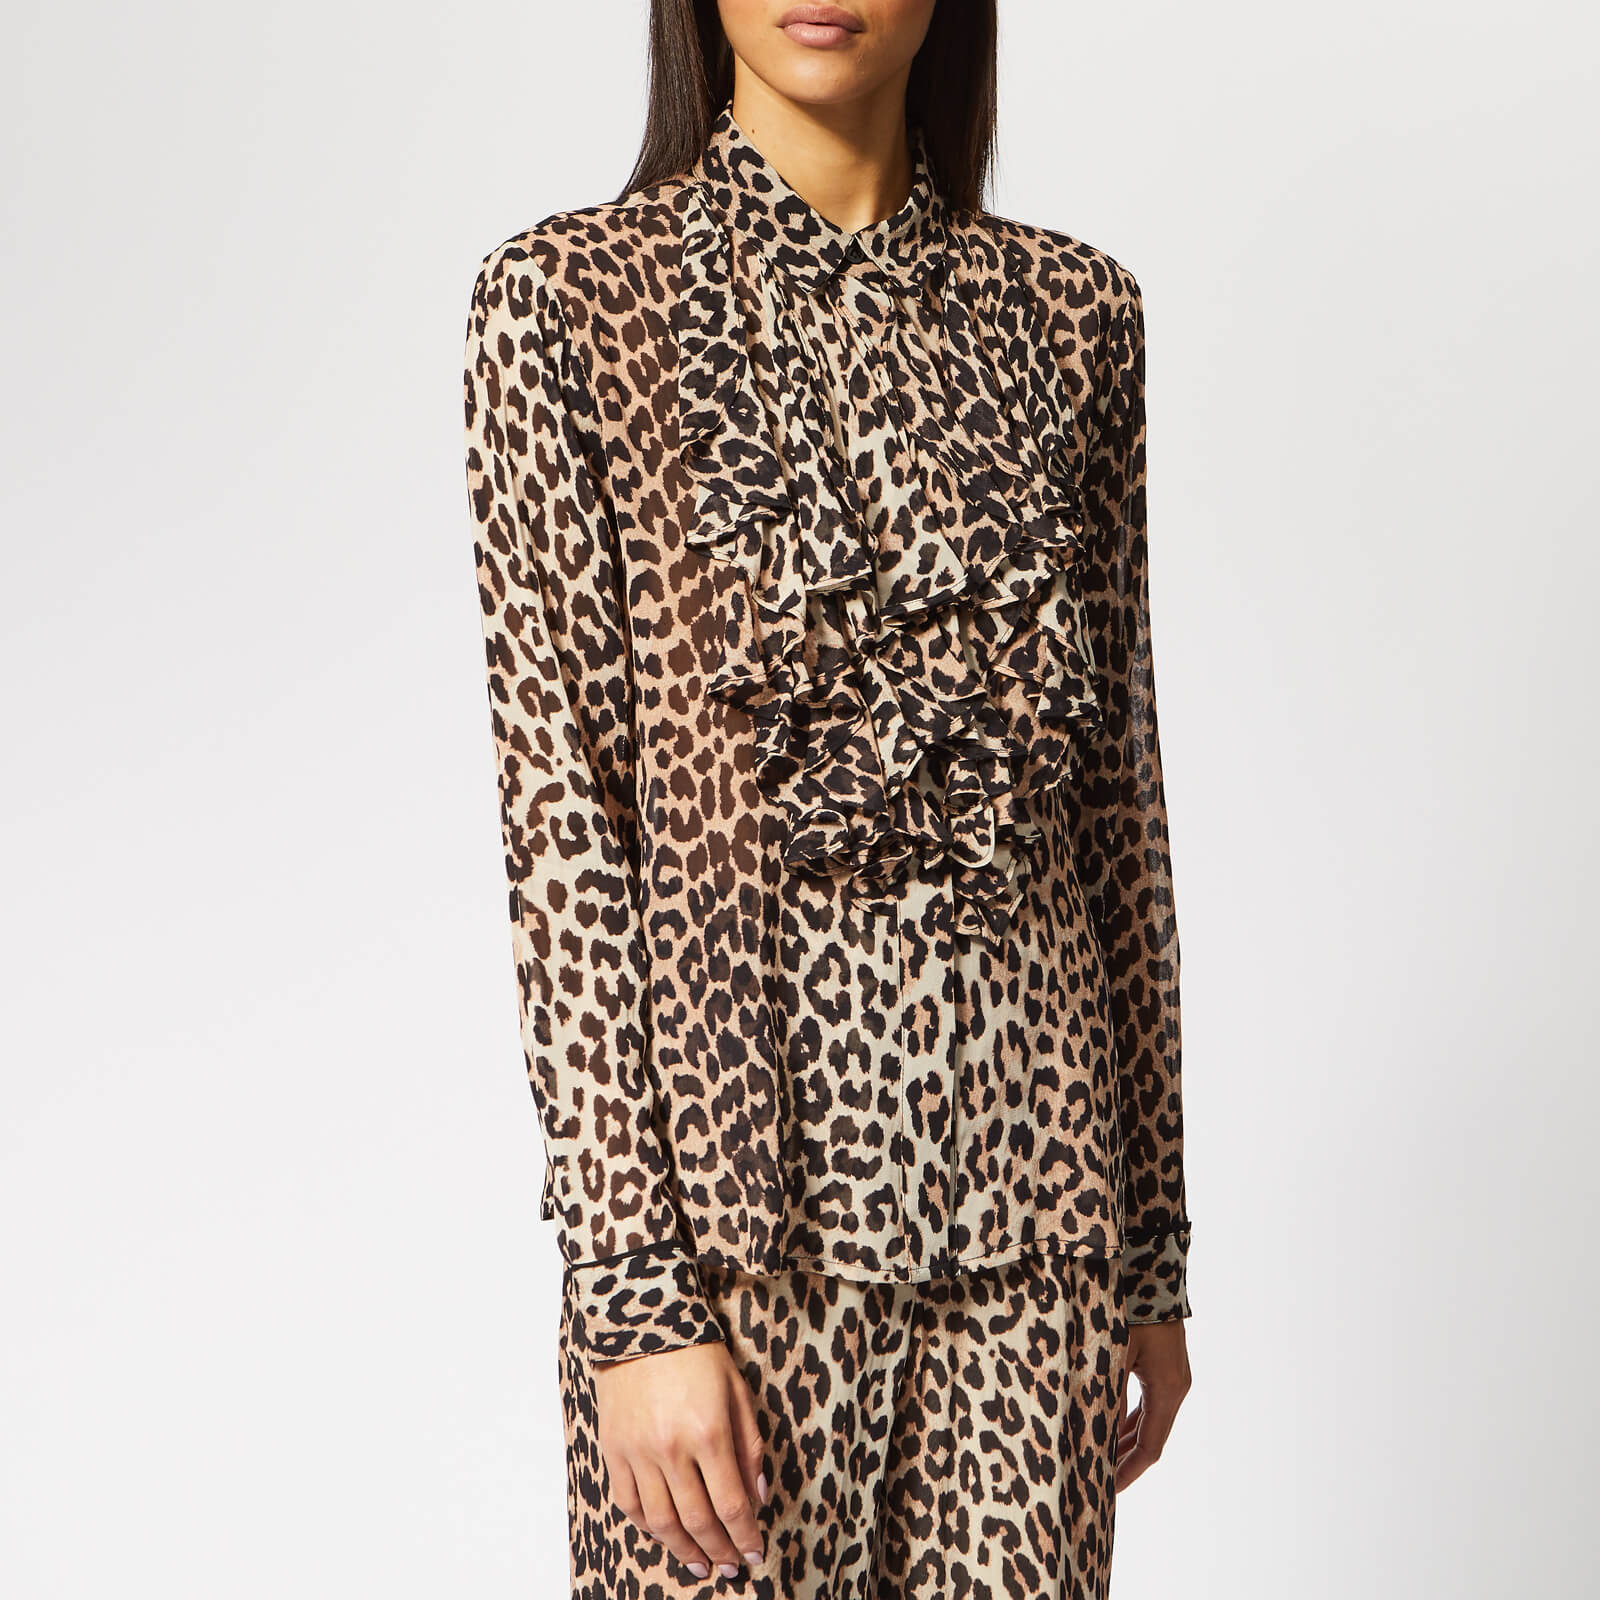 330d9aee Ganni Women's Mullin Georgette Blouse - Leopard - Free UK Delivery over £50